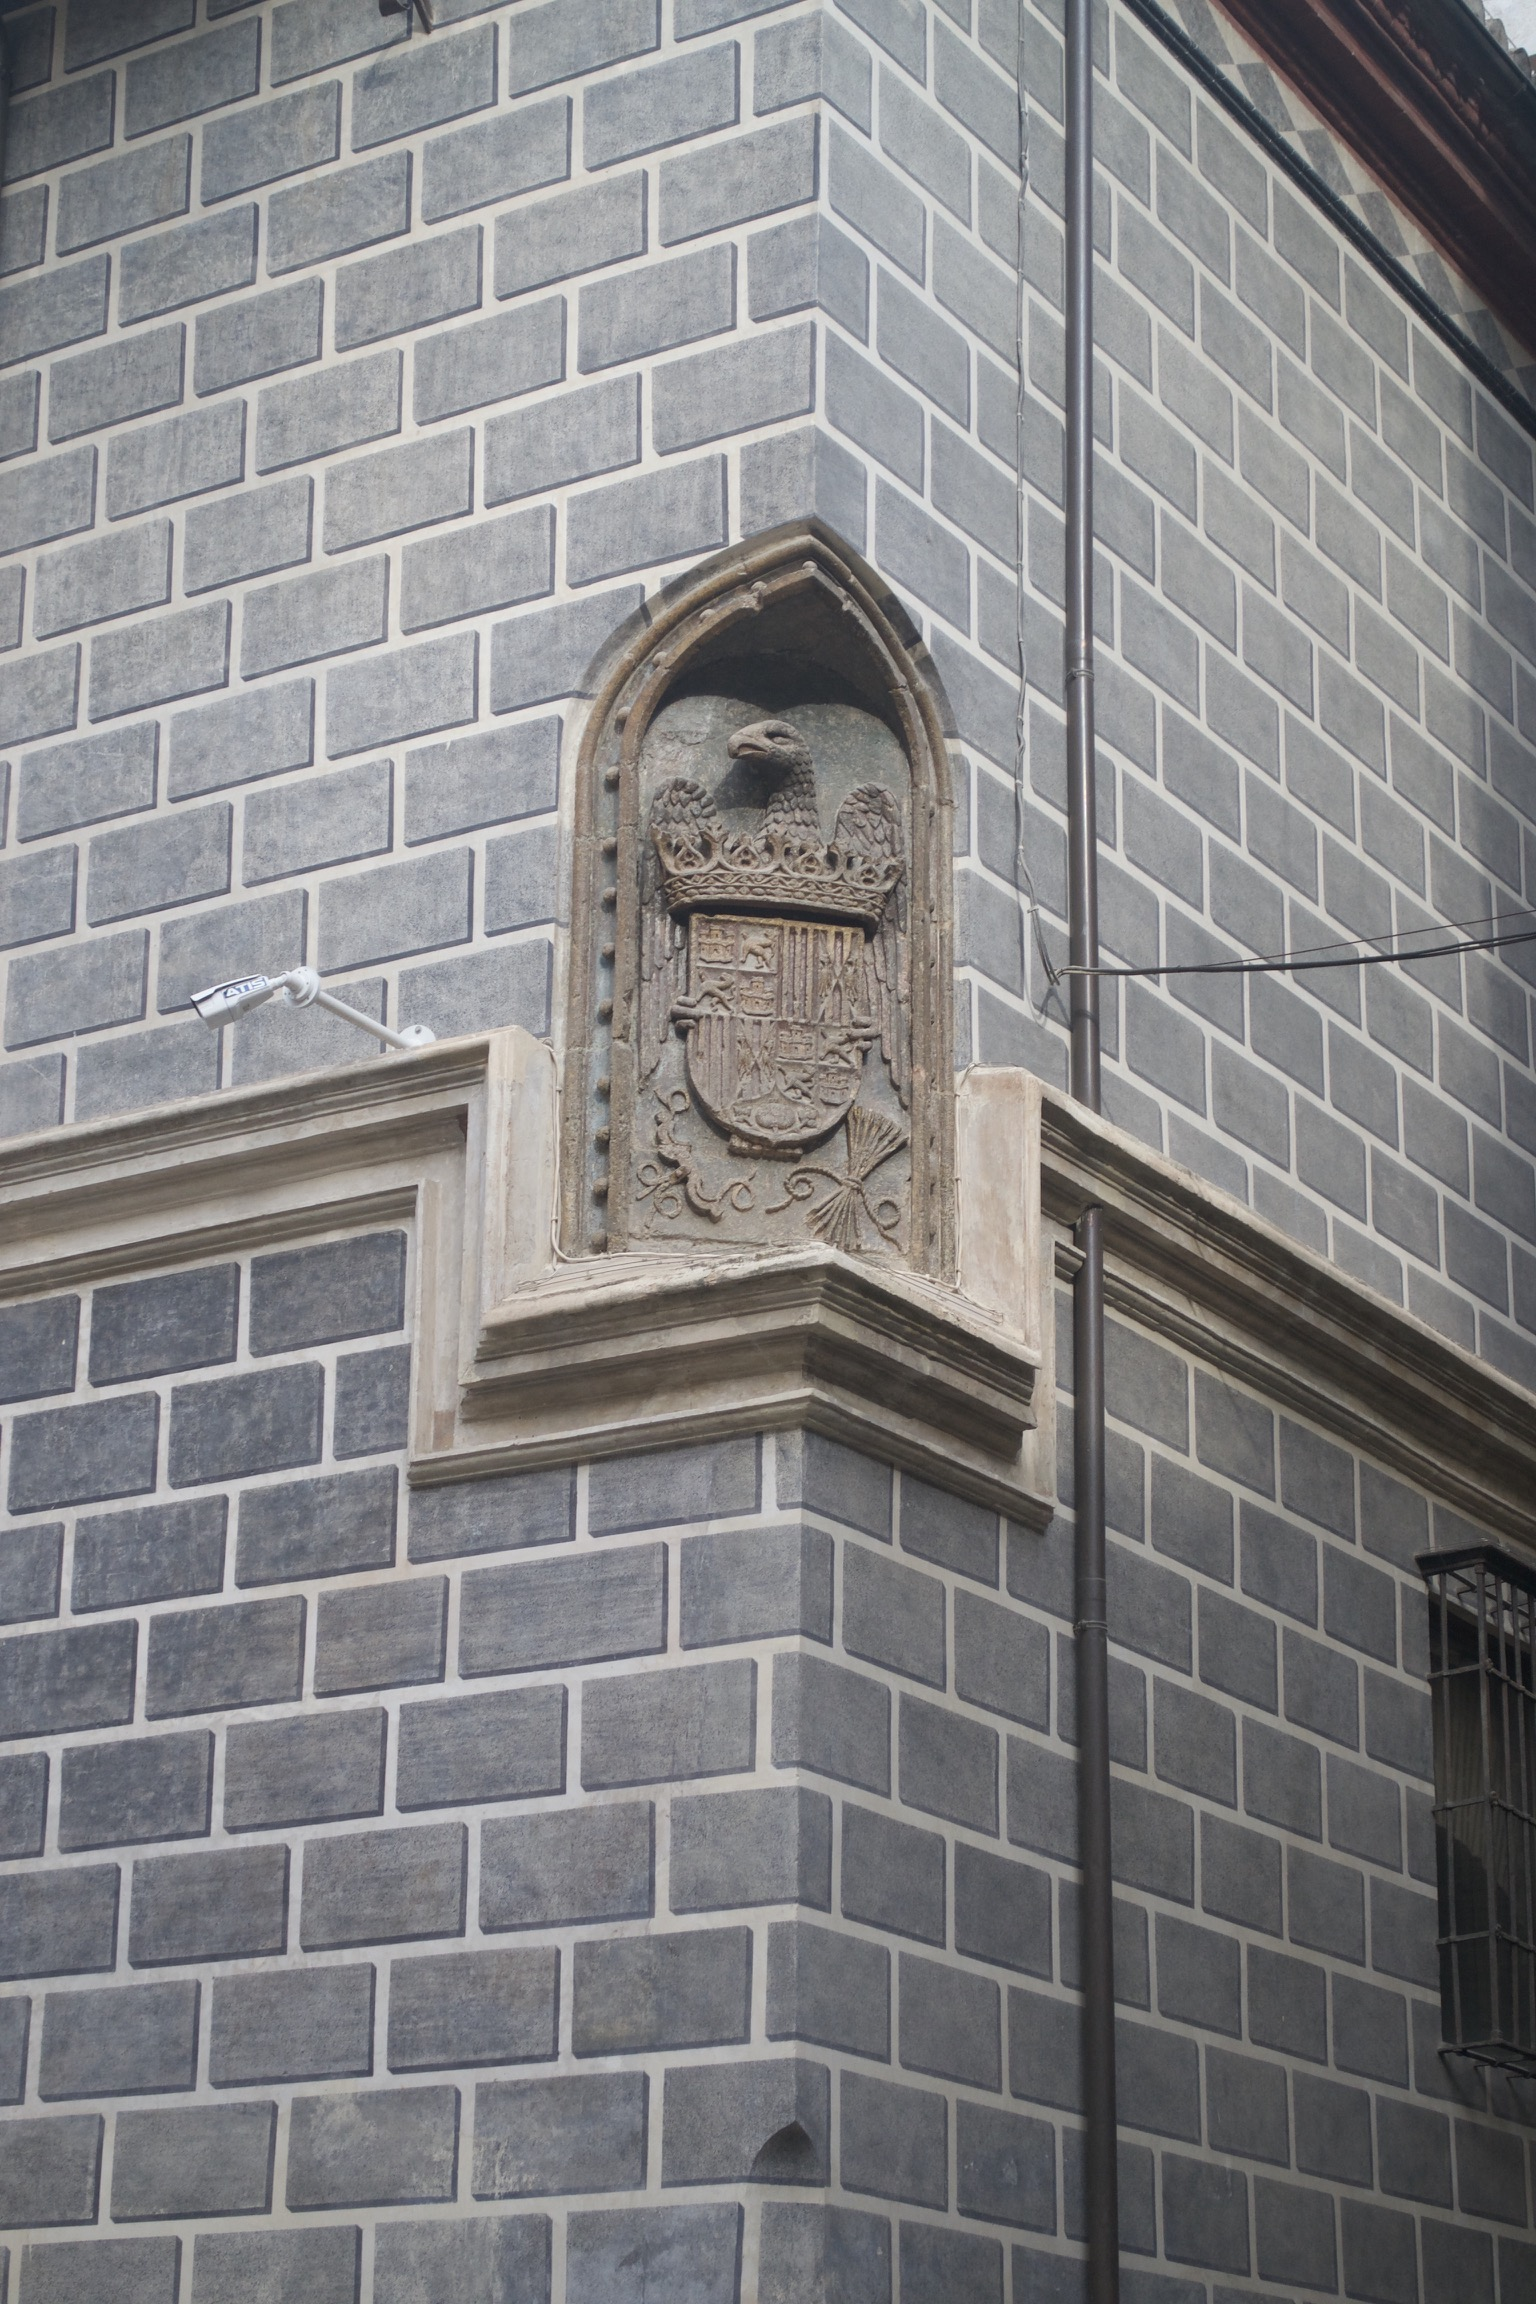 A coat of arms is built into the corner of a gray brick building.